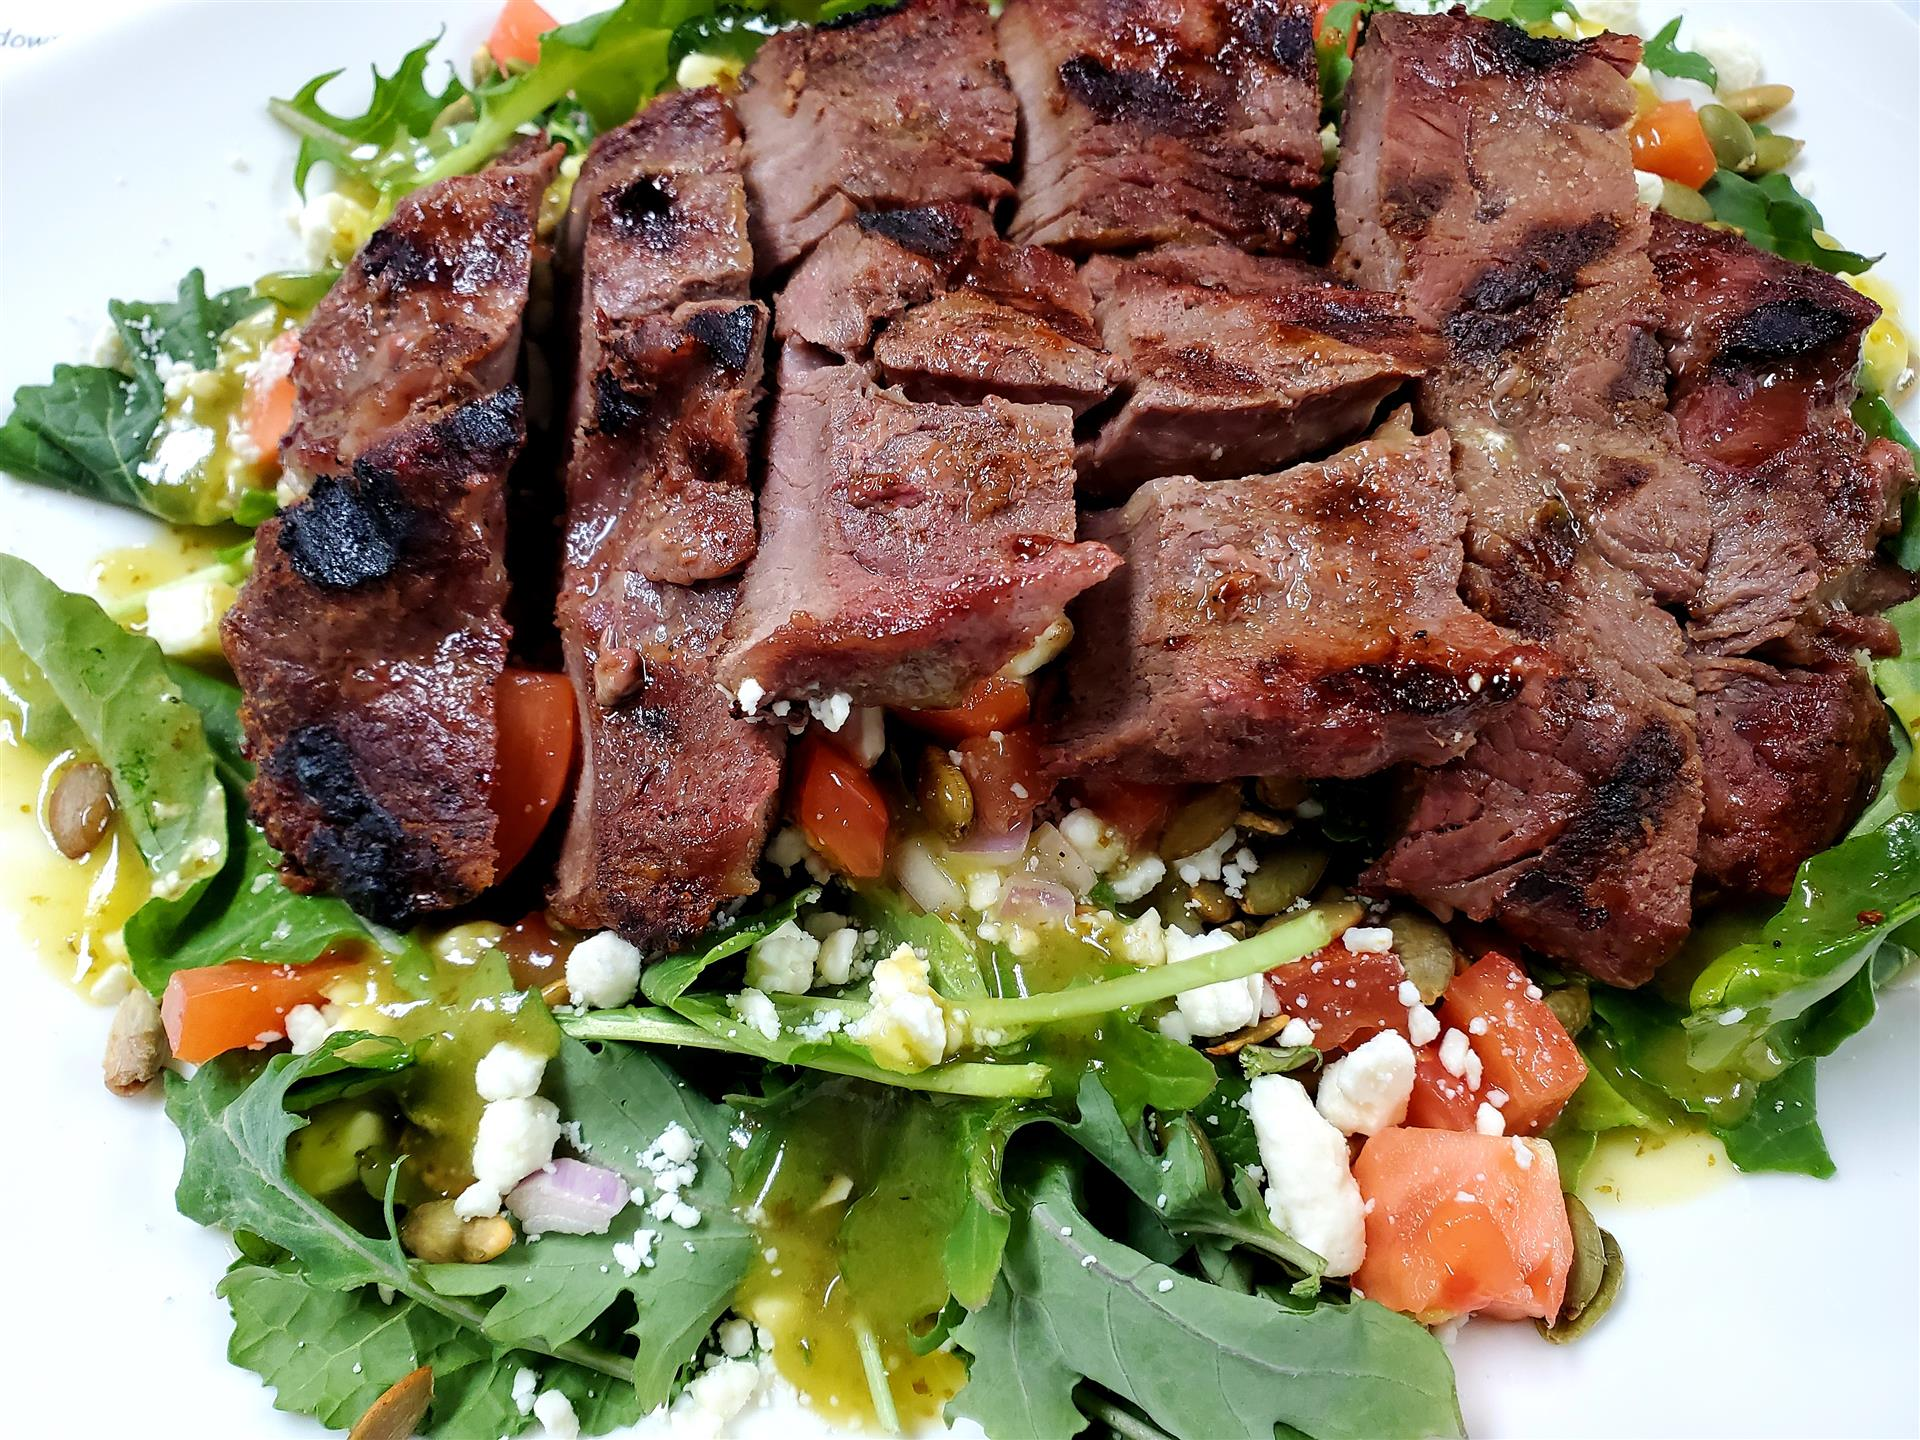 grilled steak salad with crumbled cheese and tomatoes